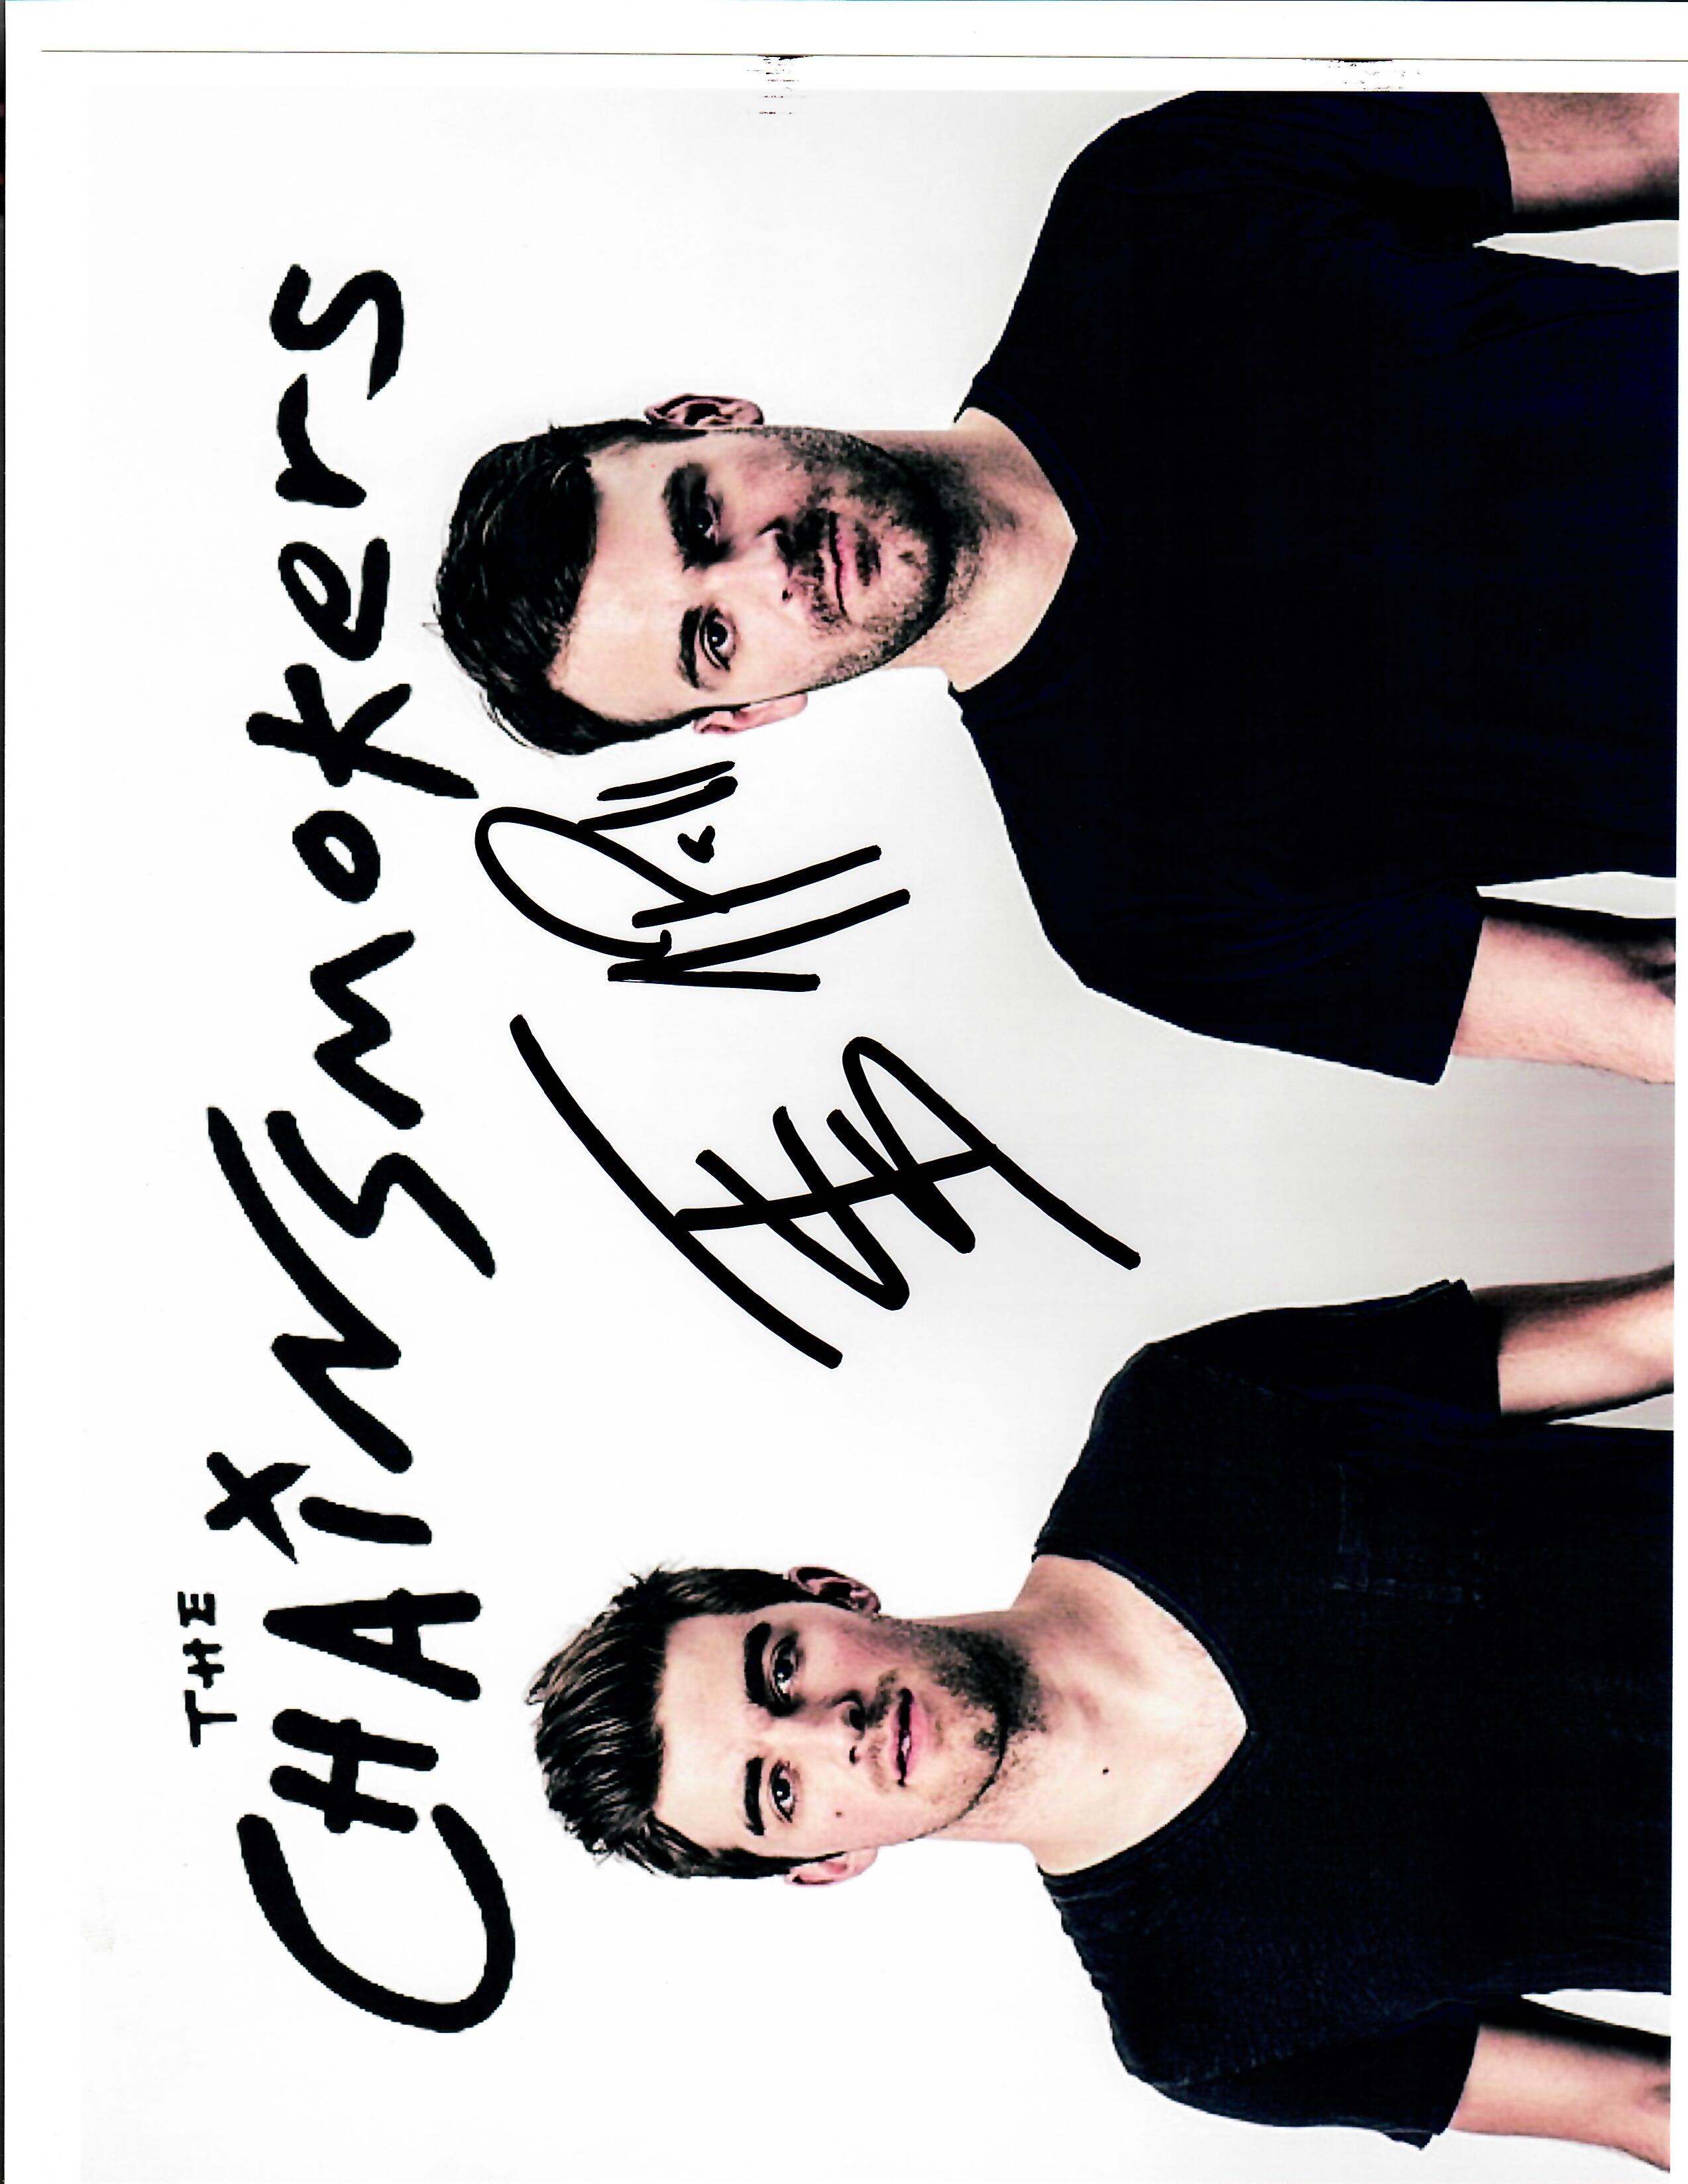 The Chainsmokers Autograph